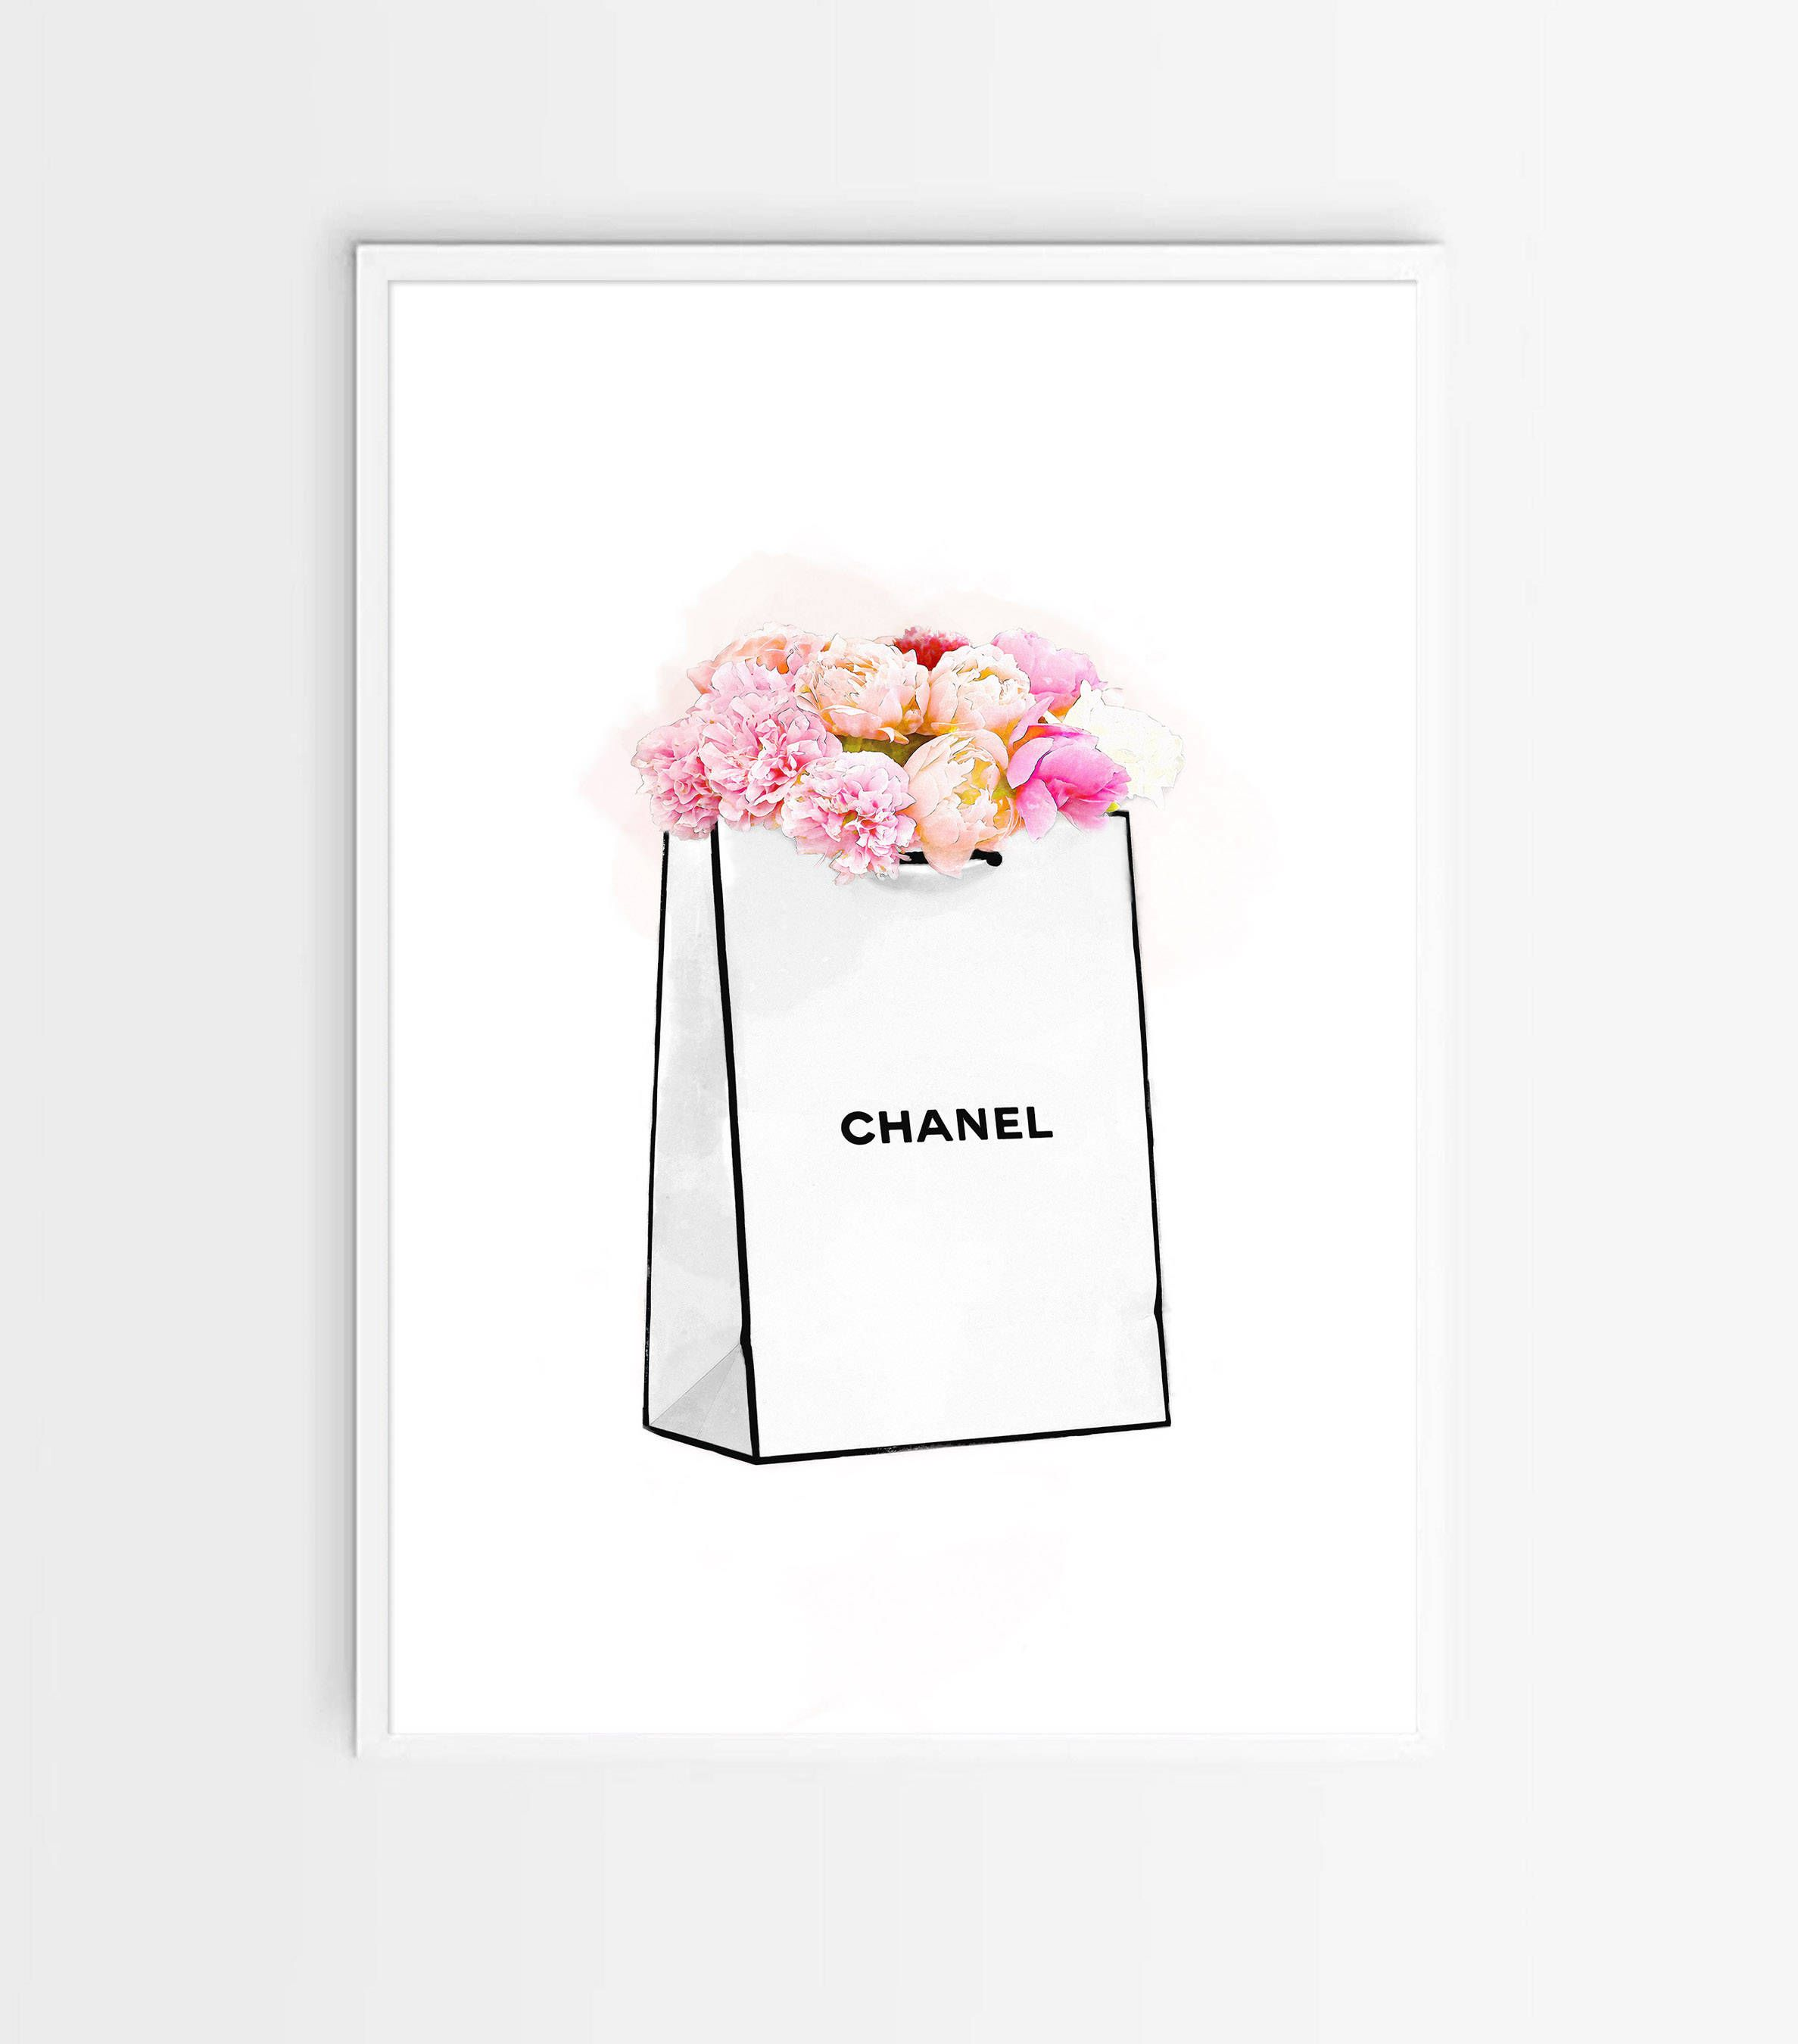 Chanel Art Printed Large Chanel Wall Art Coco Chanel Poster Coco Chanel Print Coco Chanel Wall Art Chanel Sketch Chanel Shopping Bag By Zjstudio On Etsy